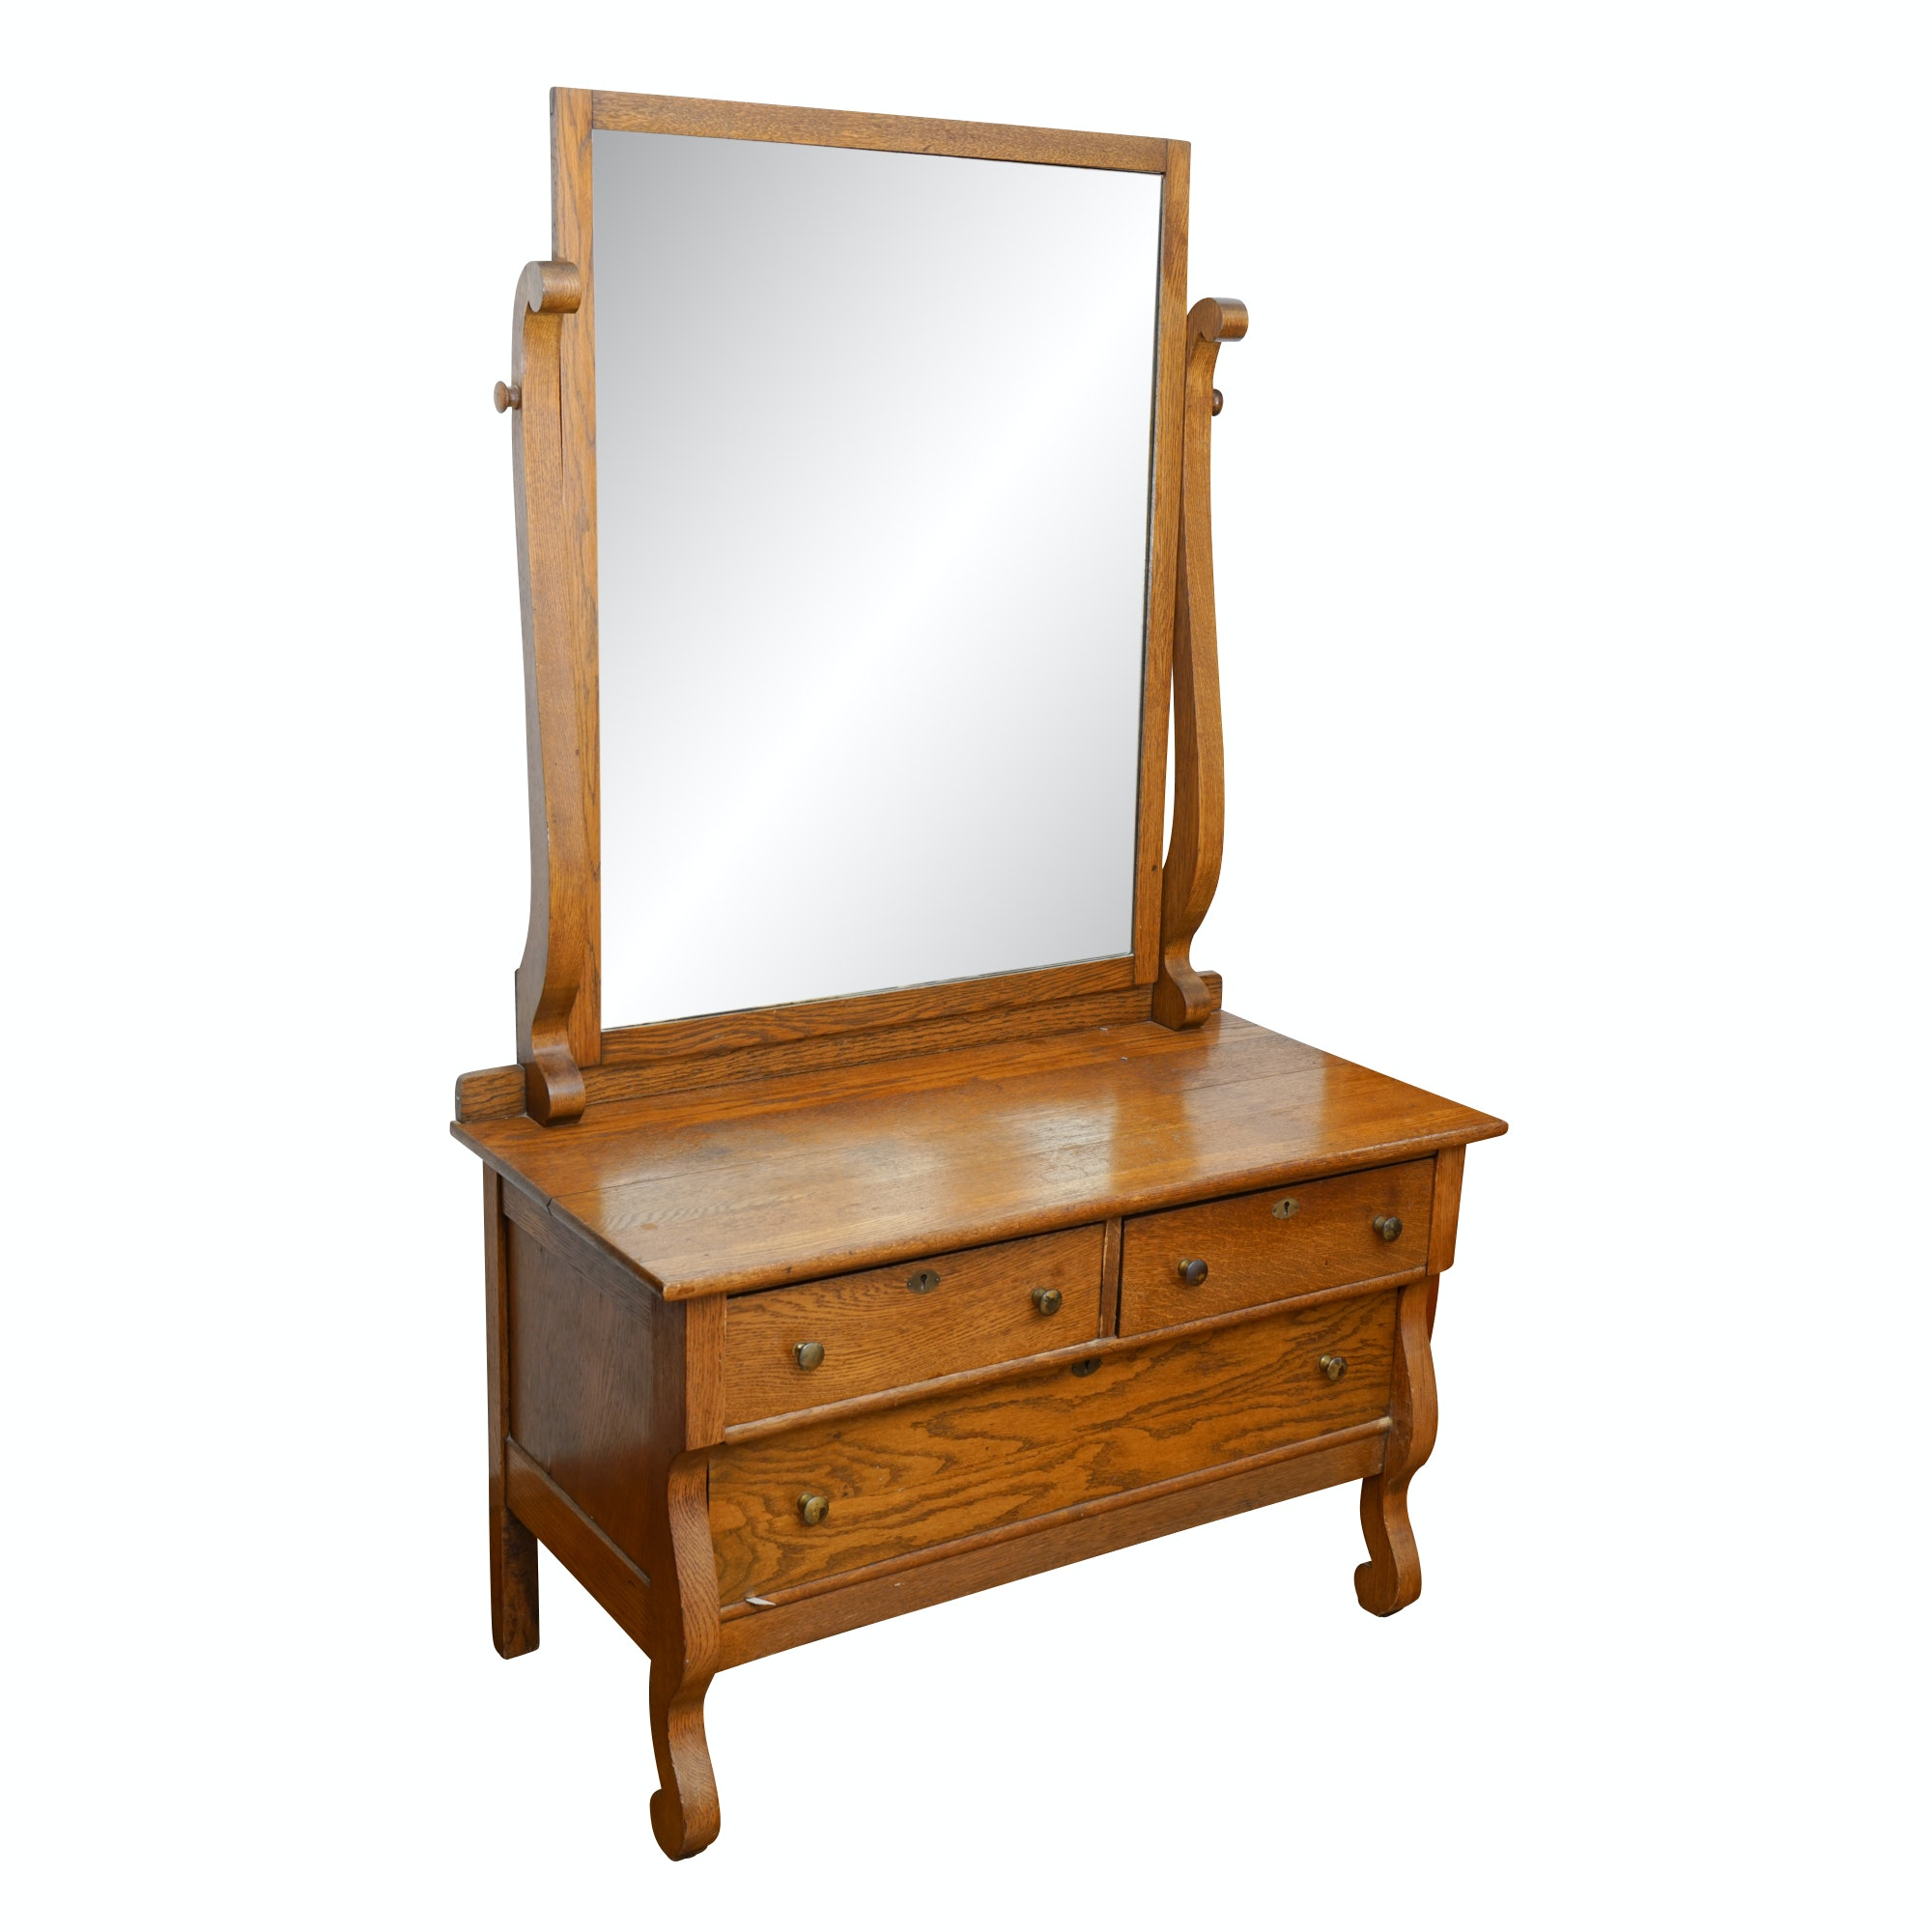 Vintage Oak Empire Revival Dresser with Mirror by Toccoa Furniture